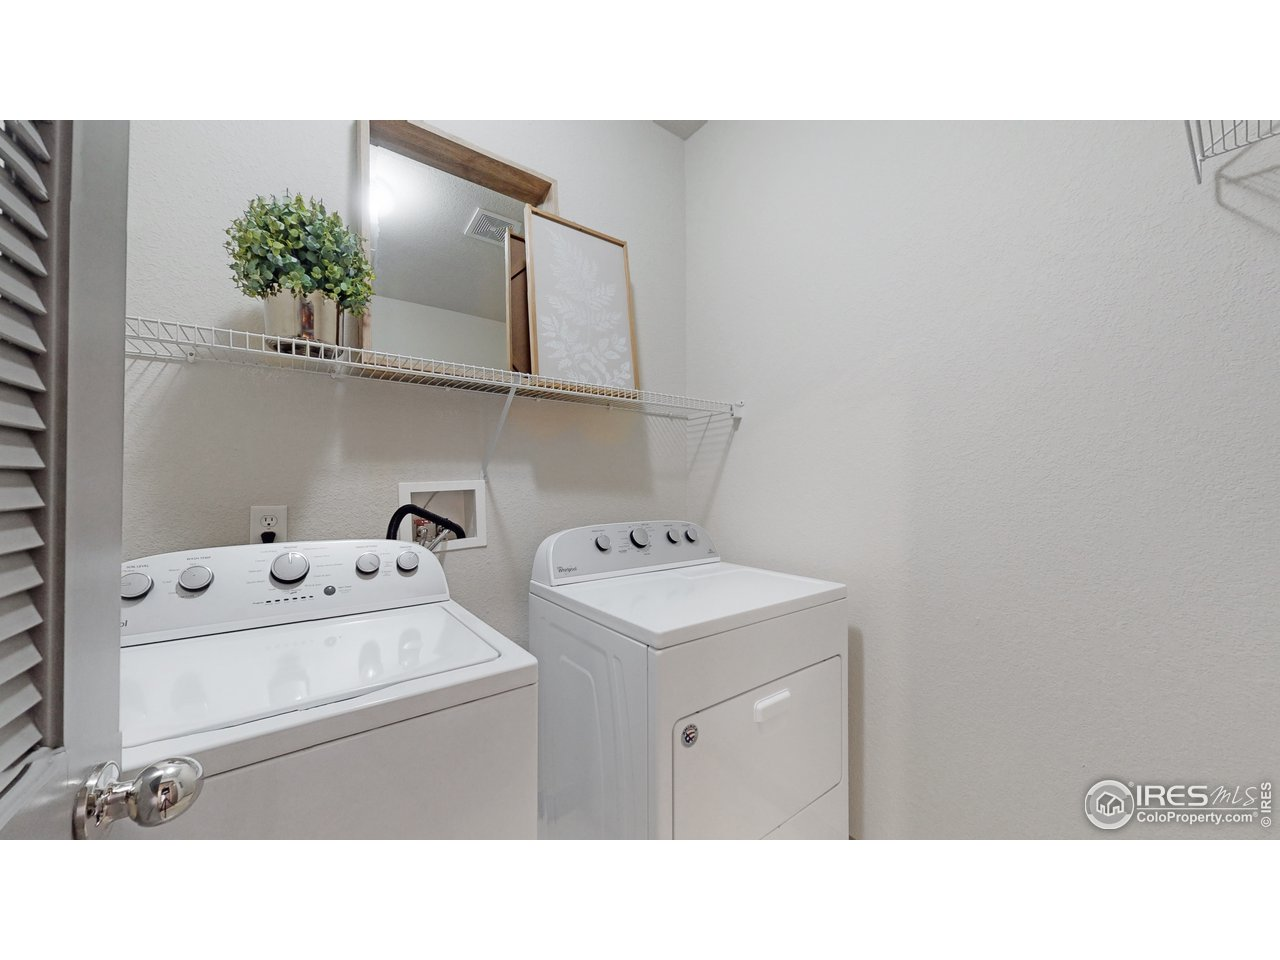 Laundry (washer/dryer included)